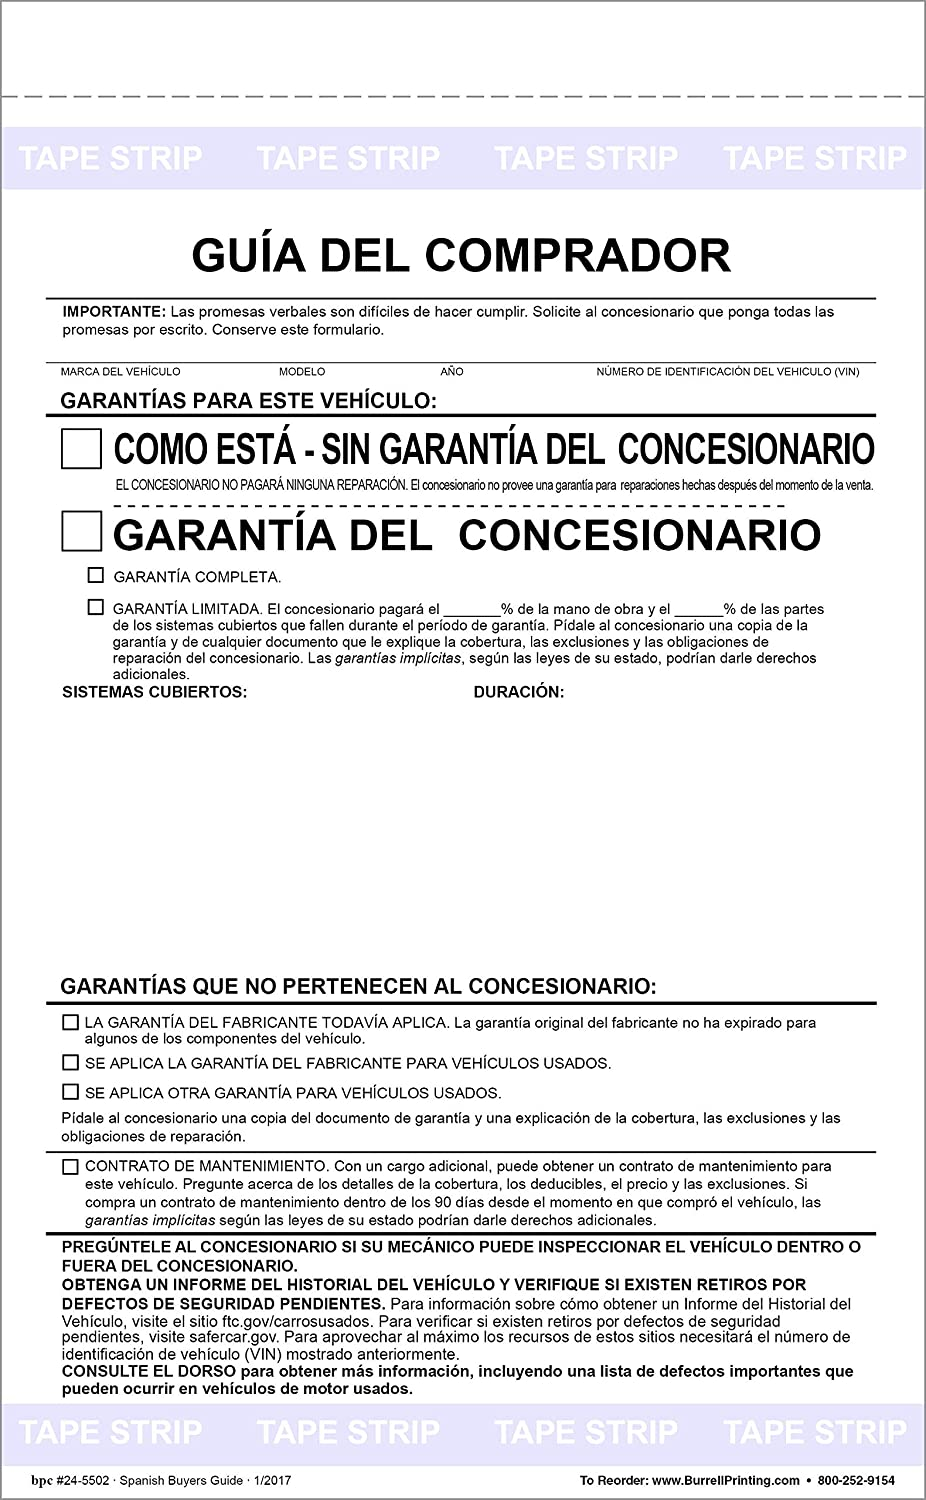 Amazon.com : Buyers Guide Form - Adhesive Tape - Spanish - As is - Warranty Pack of 50 Forms : Office Products